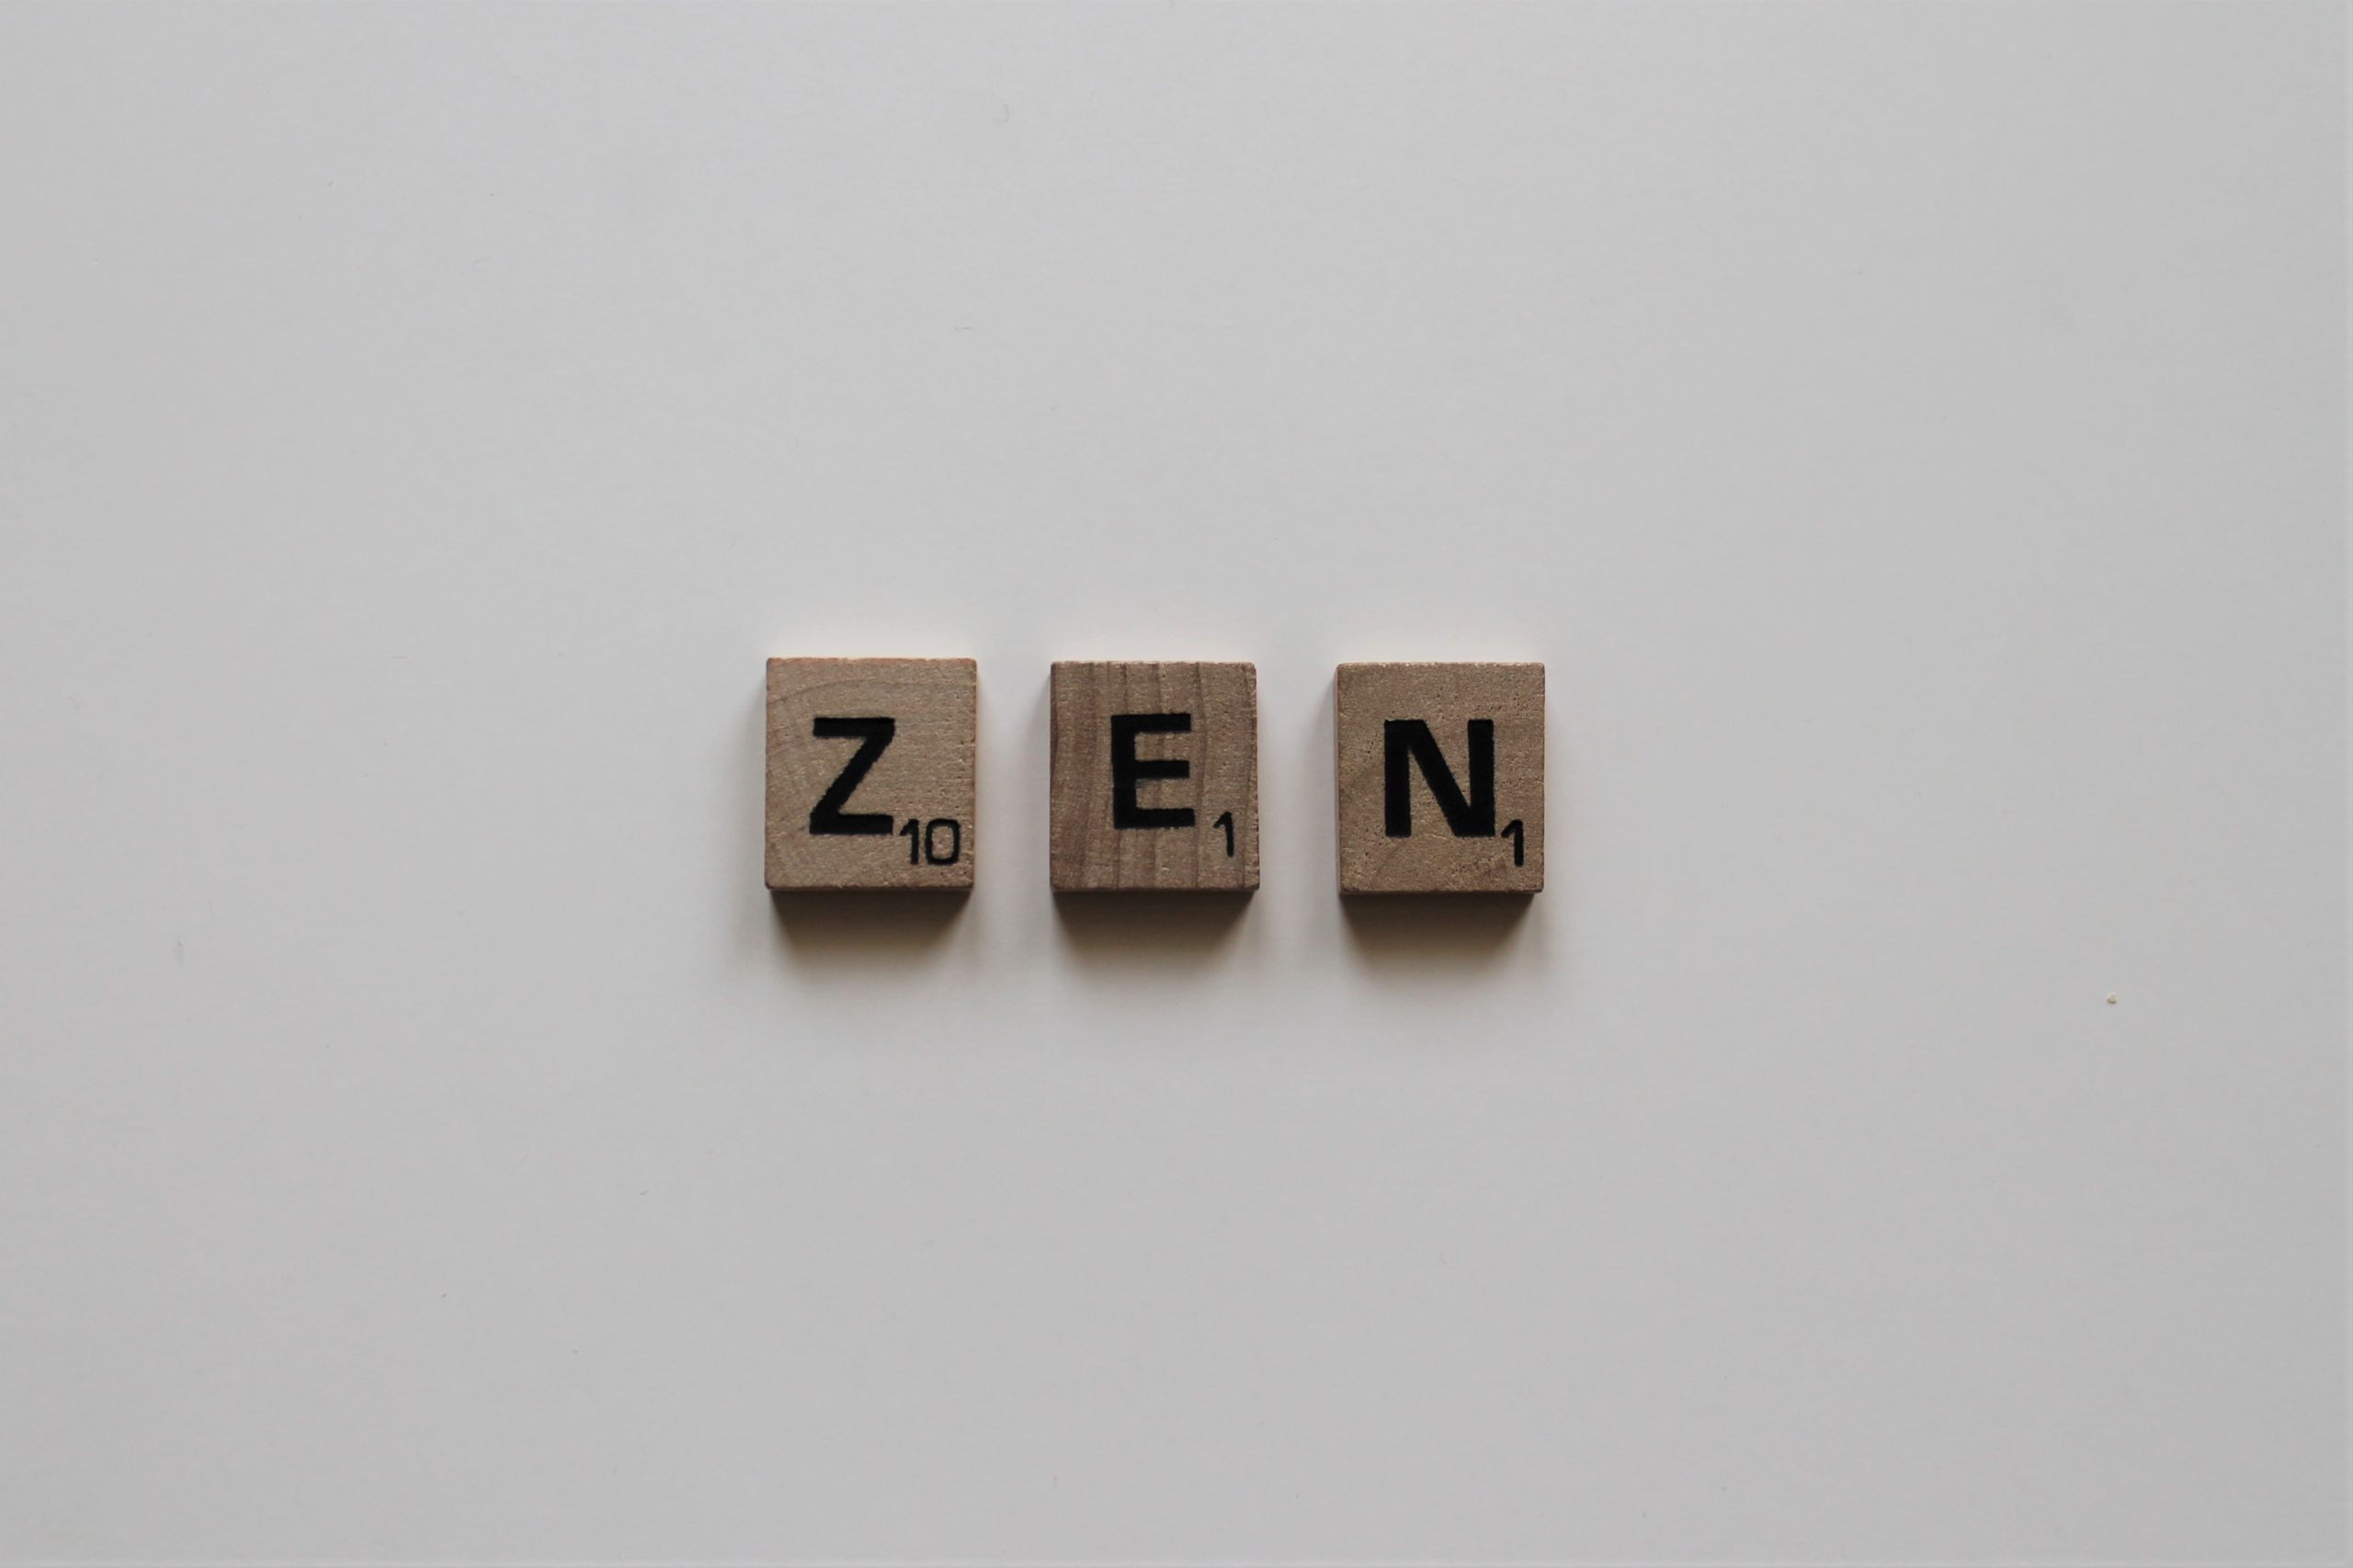 scrabble tiles that spell zen